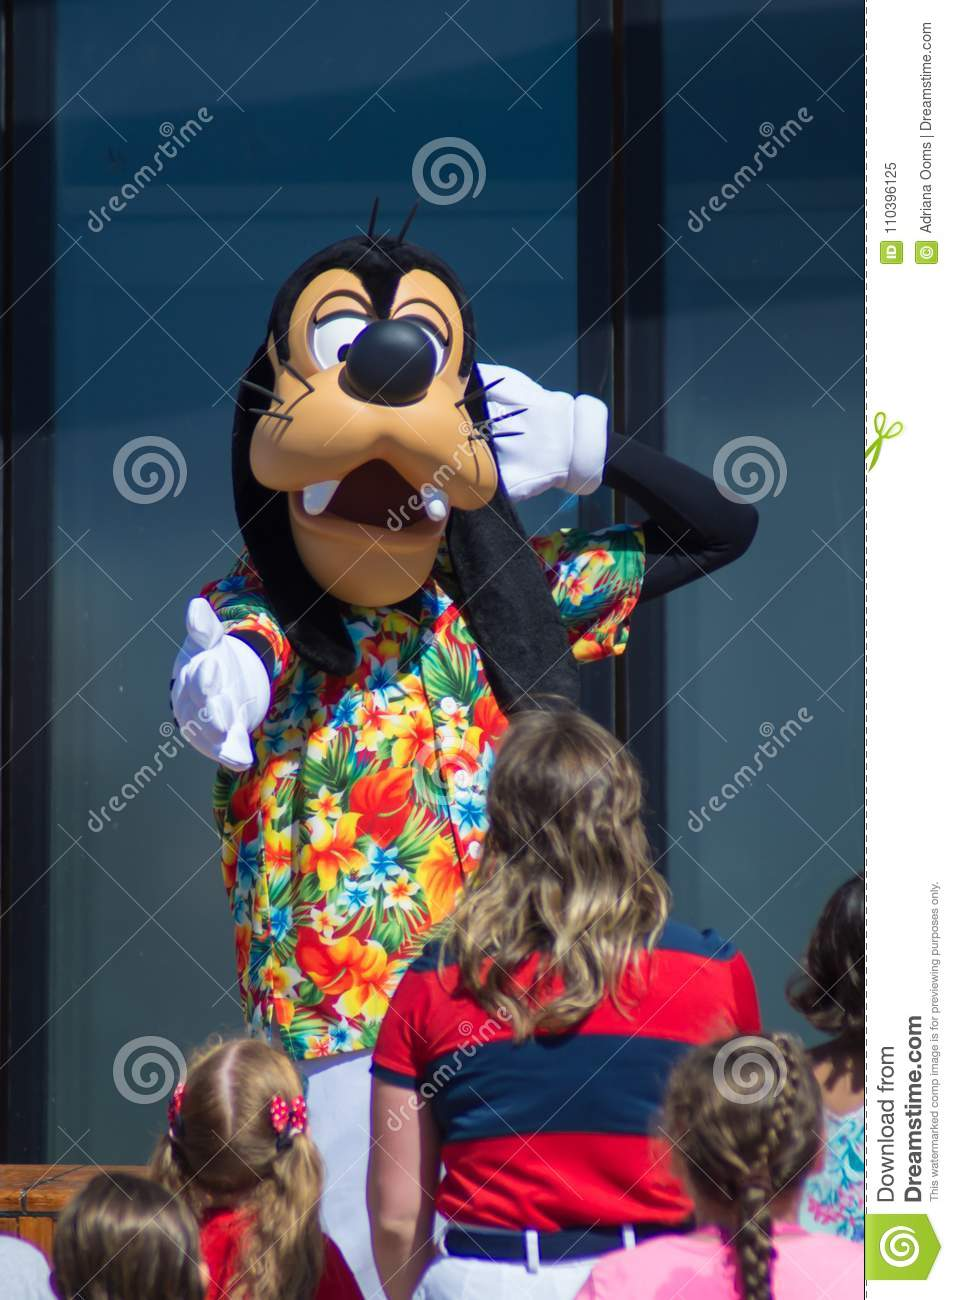 Goofy Dancing In Tropical Outfit Editorial Image Image Of Magic Hawaii 110396125